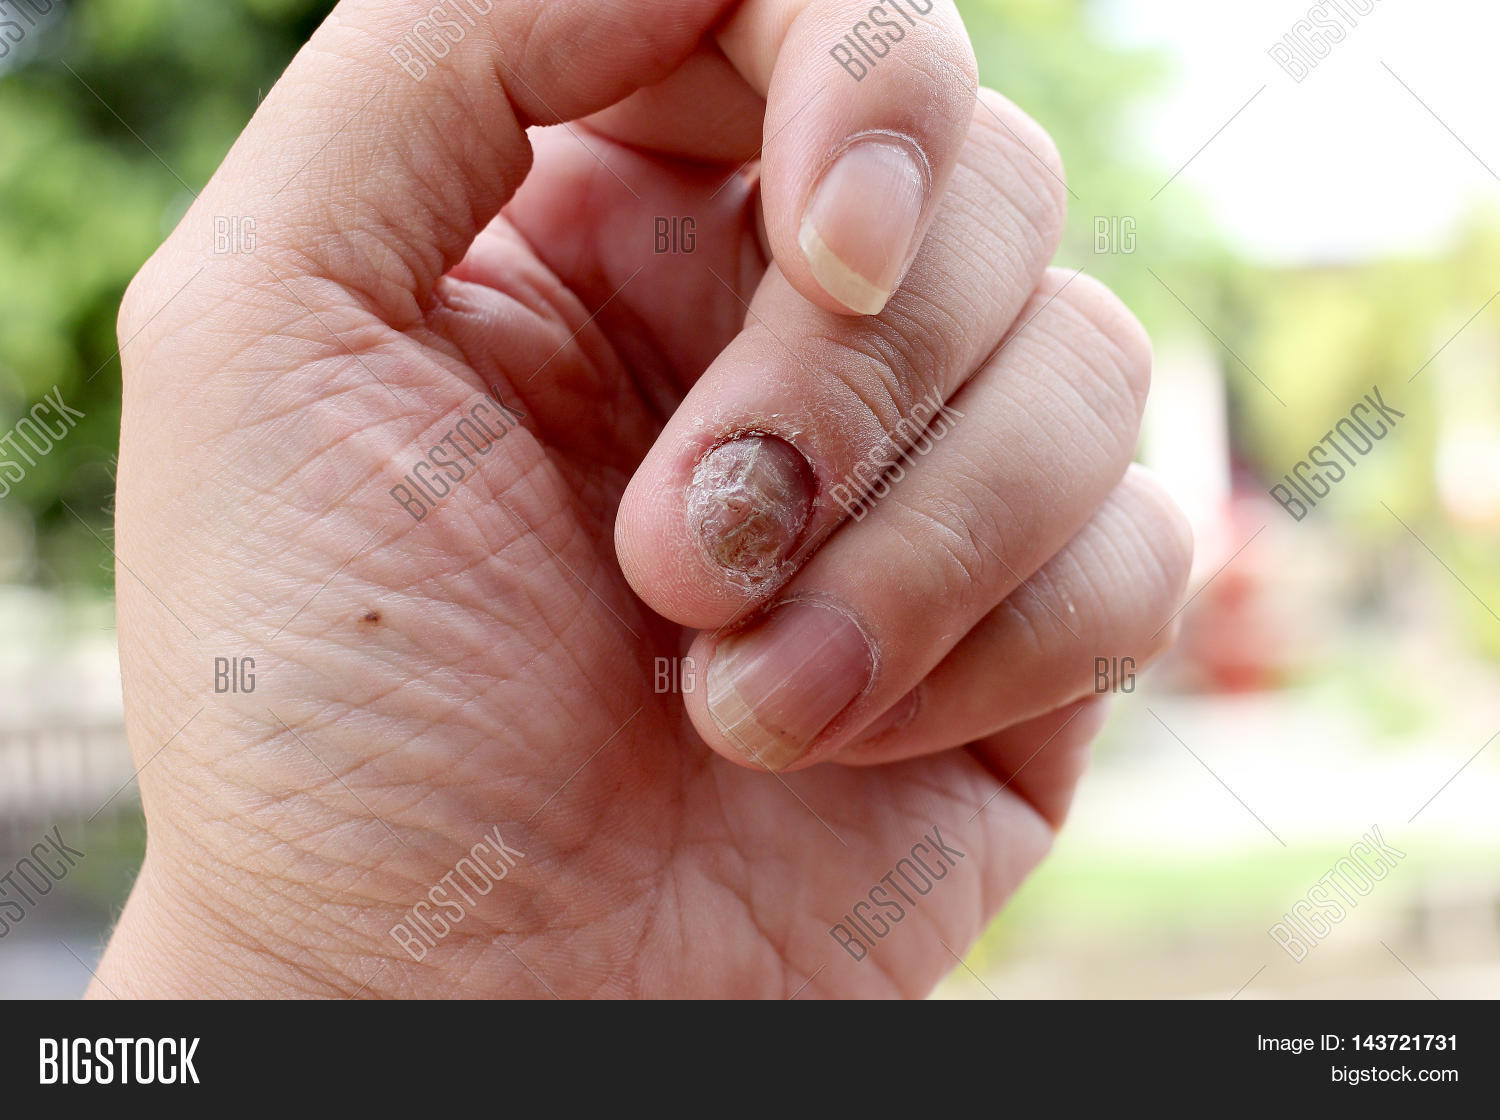 Fungus Infection On Nails Hand, Image & Photo | Bigstock